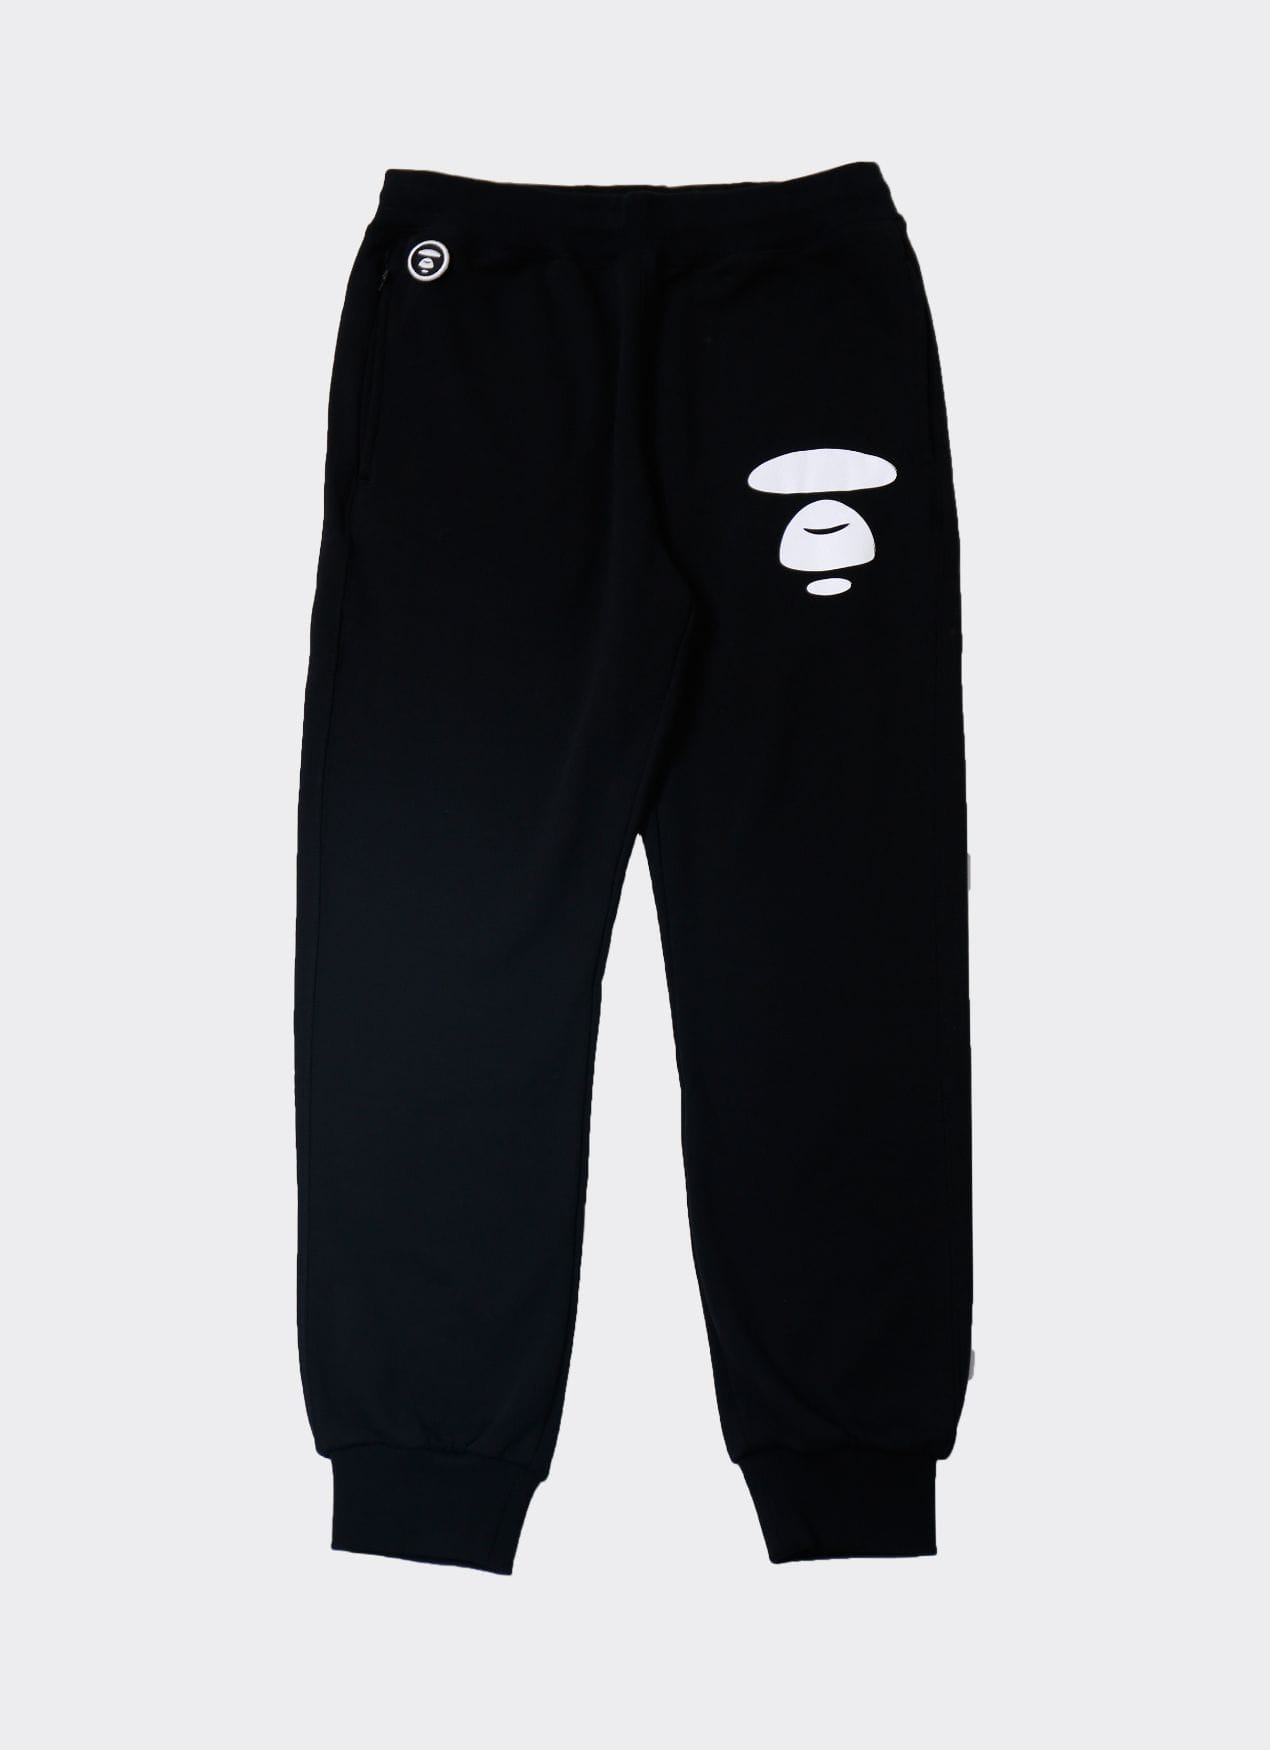 AAPE Black Sweat Pants  AAPE Black Sweat Pants ... 10790d450